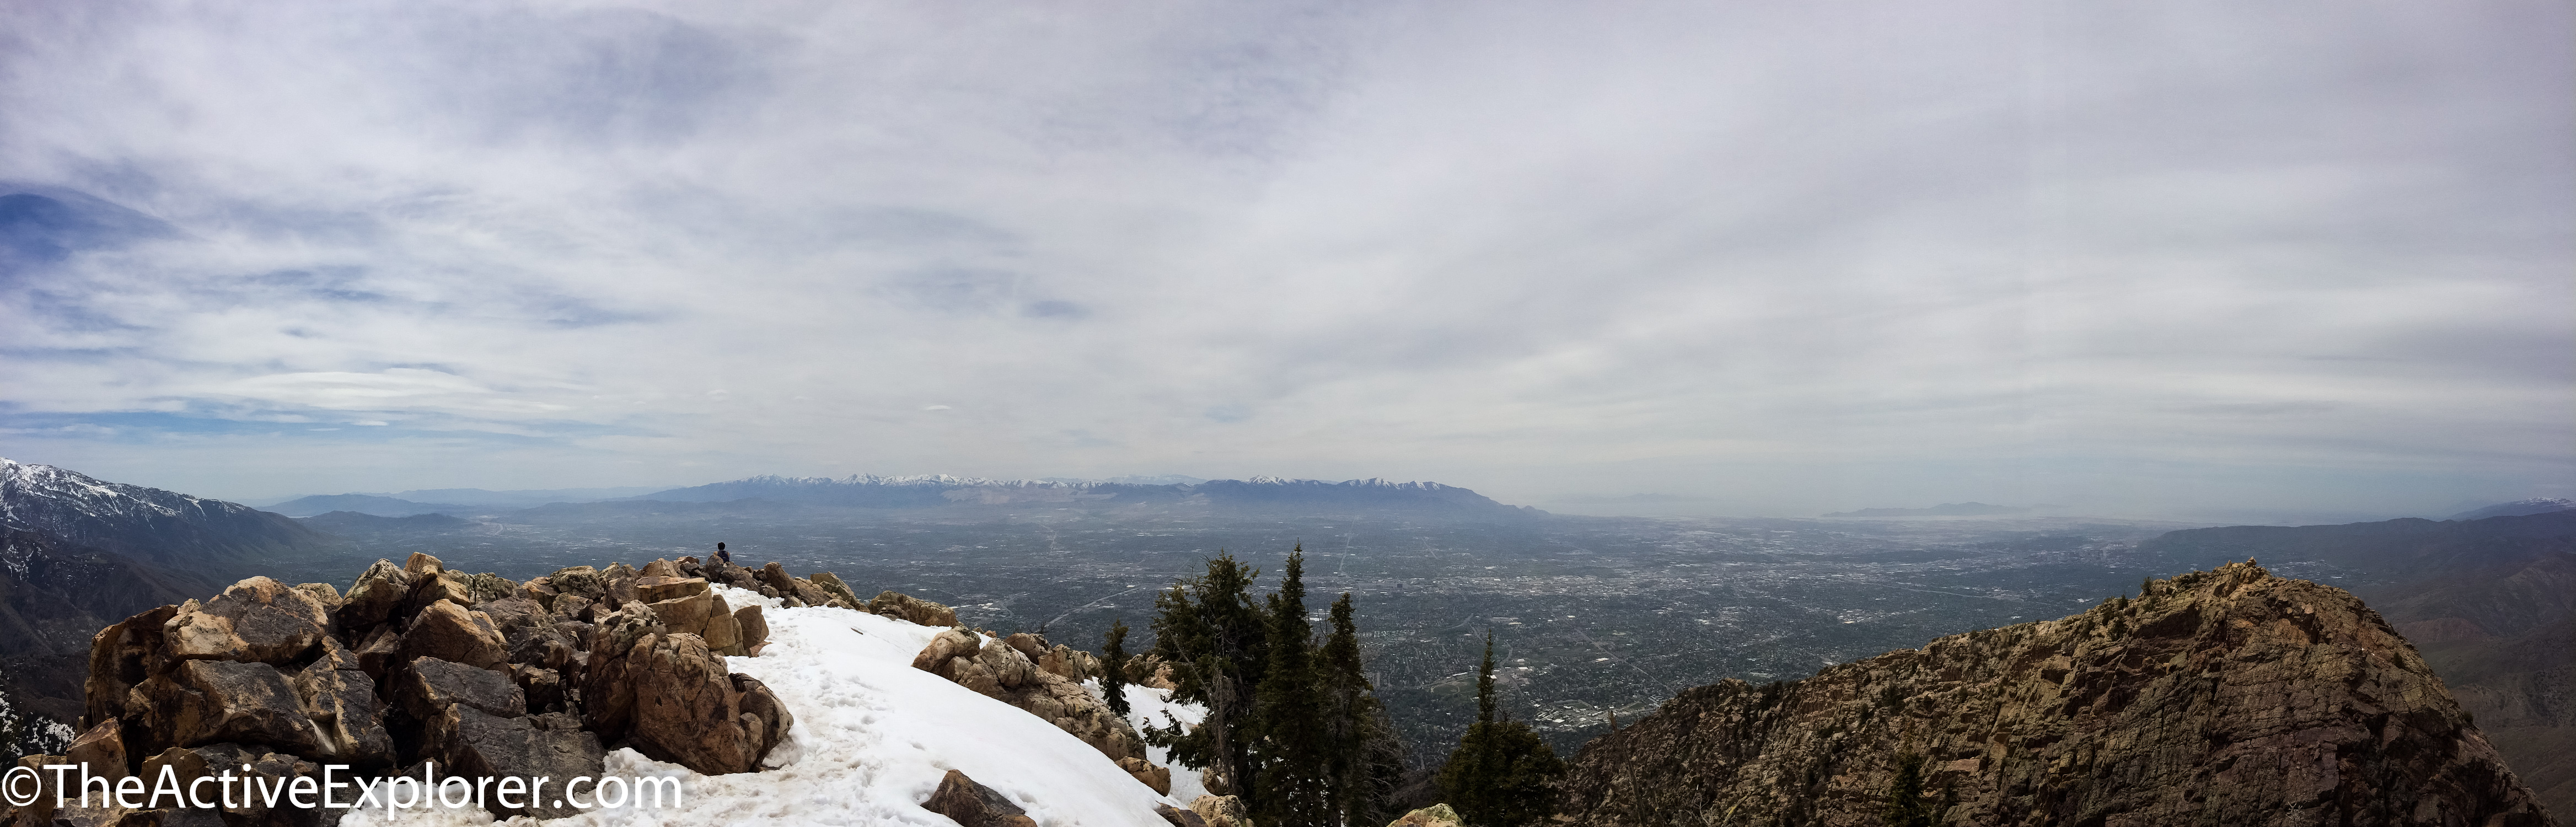 Mount Olympus, Salt Lake Valley